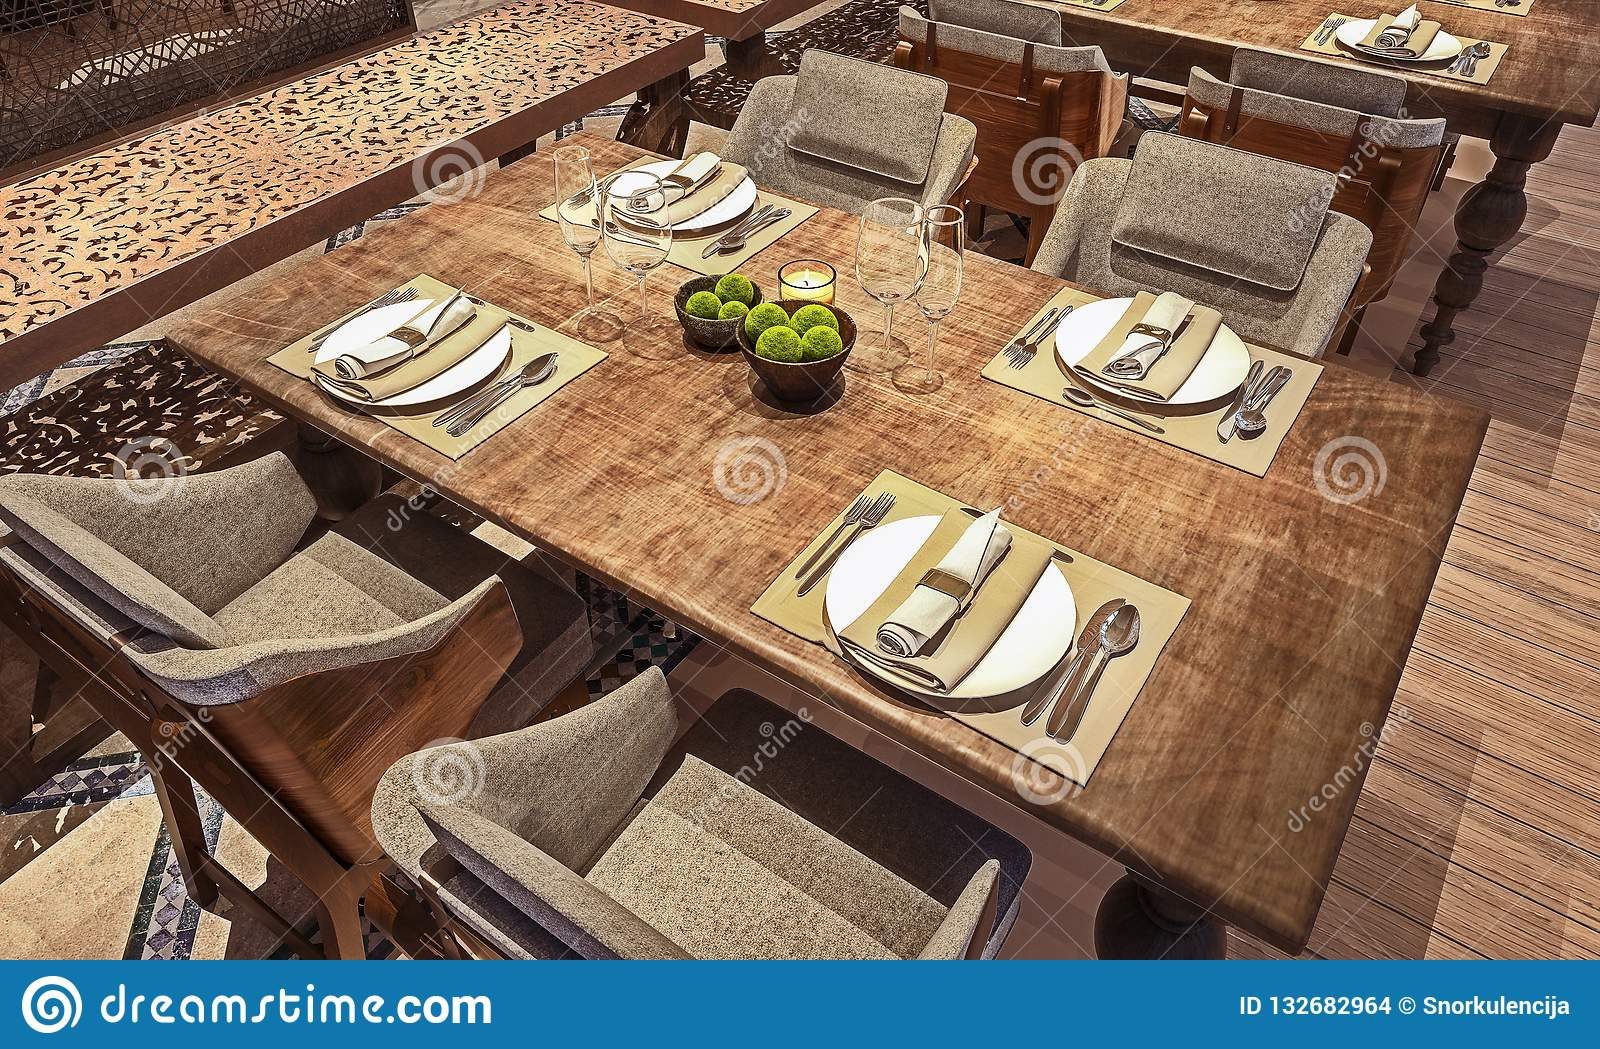 Angle View Of Table Setup For Modern Arabic Restaurant Concept Wooden Distressed Table 3d Render Stock Photo Image Of Dinner Ideas 132682964